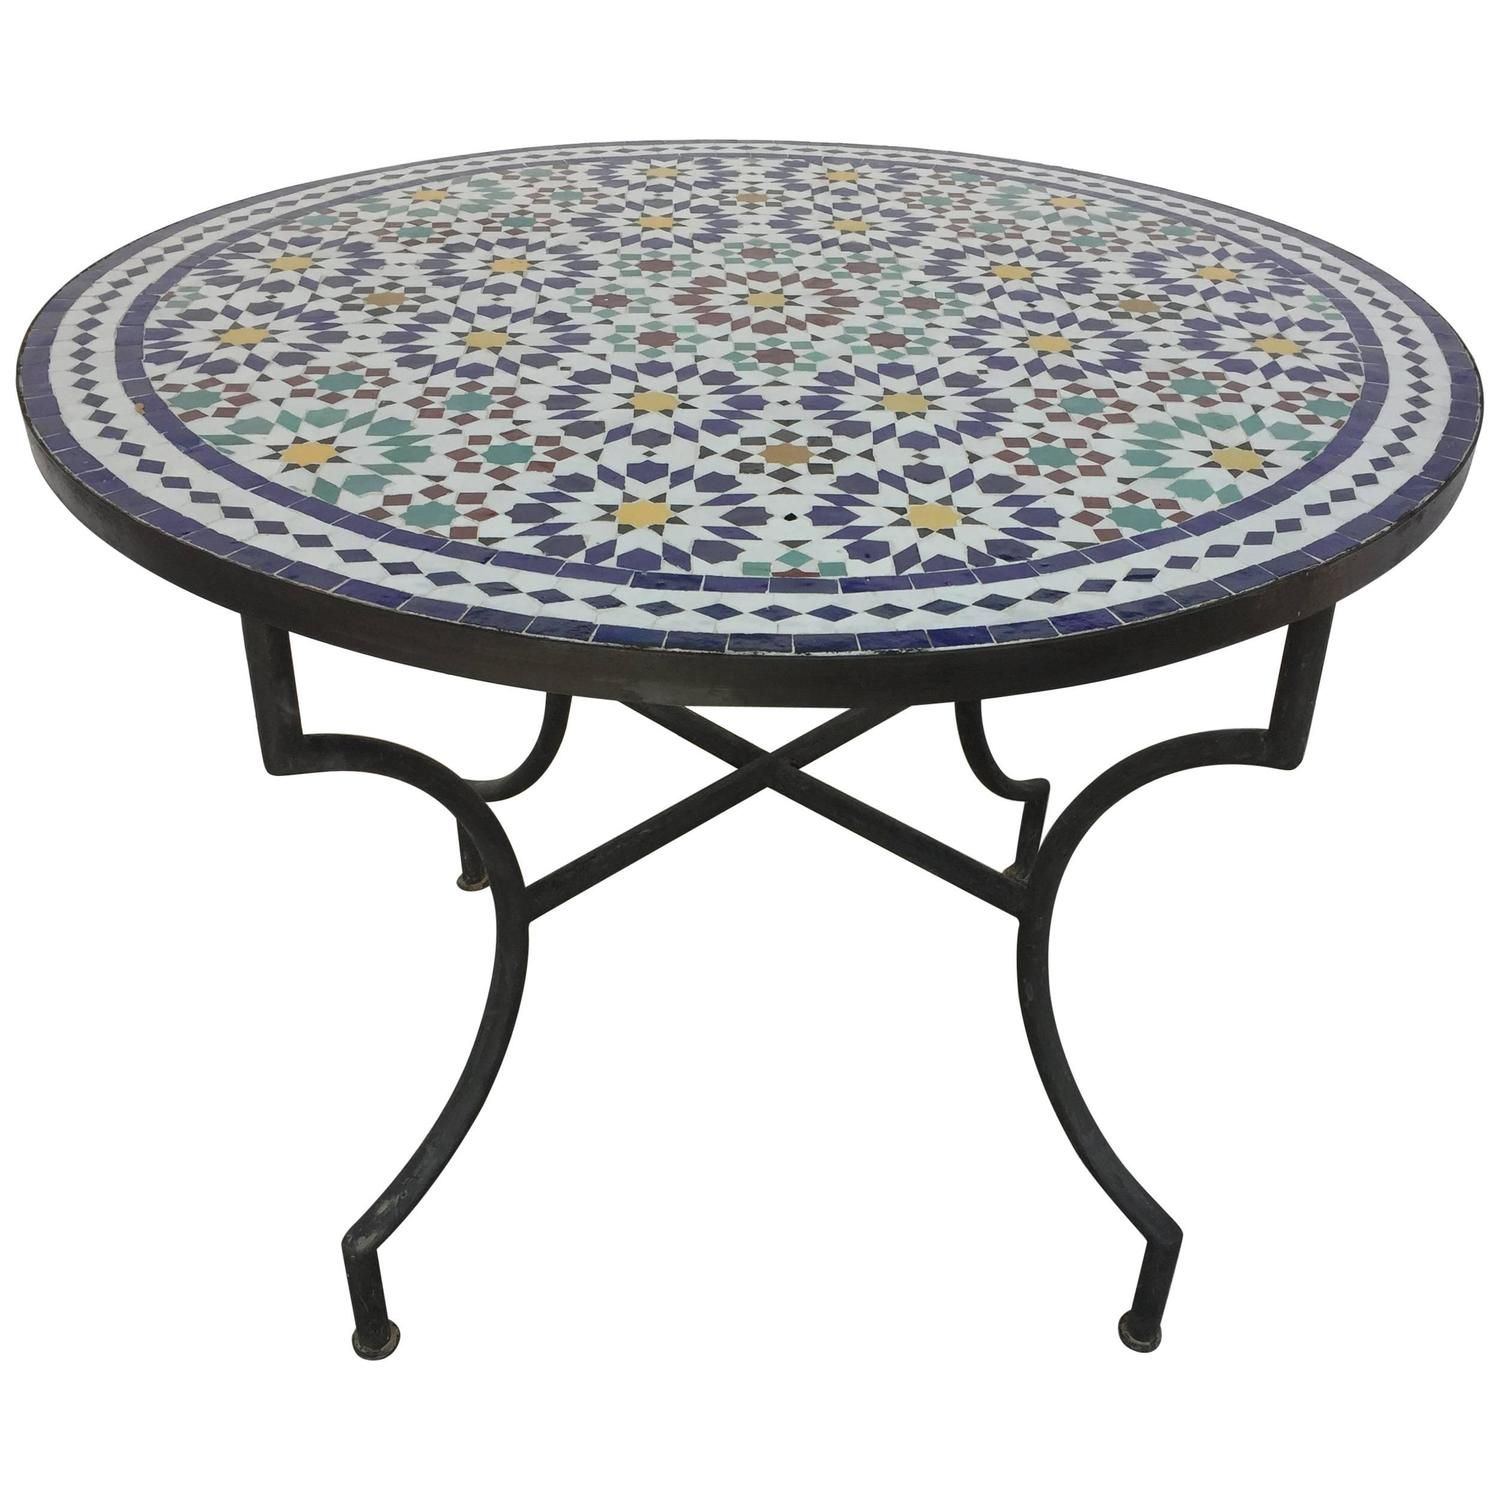 Moroccan Outdoor Mosaic Tile Table From Fez In Traditional Moorish Design Mosaic Tile Table Moorish Design Tile Tables